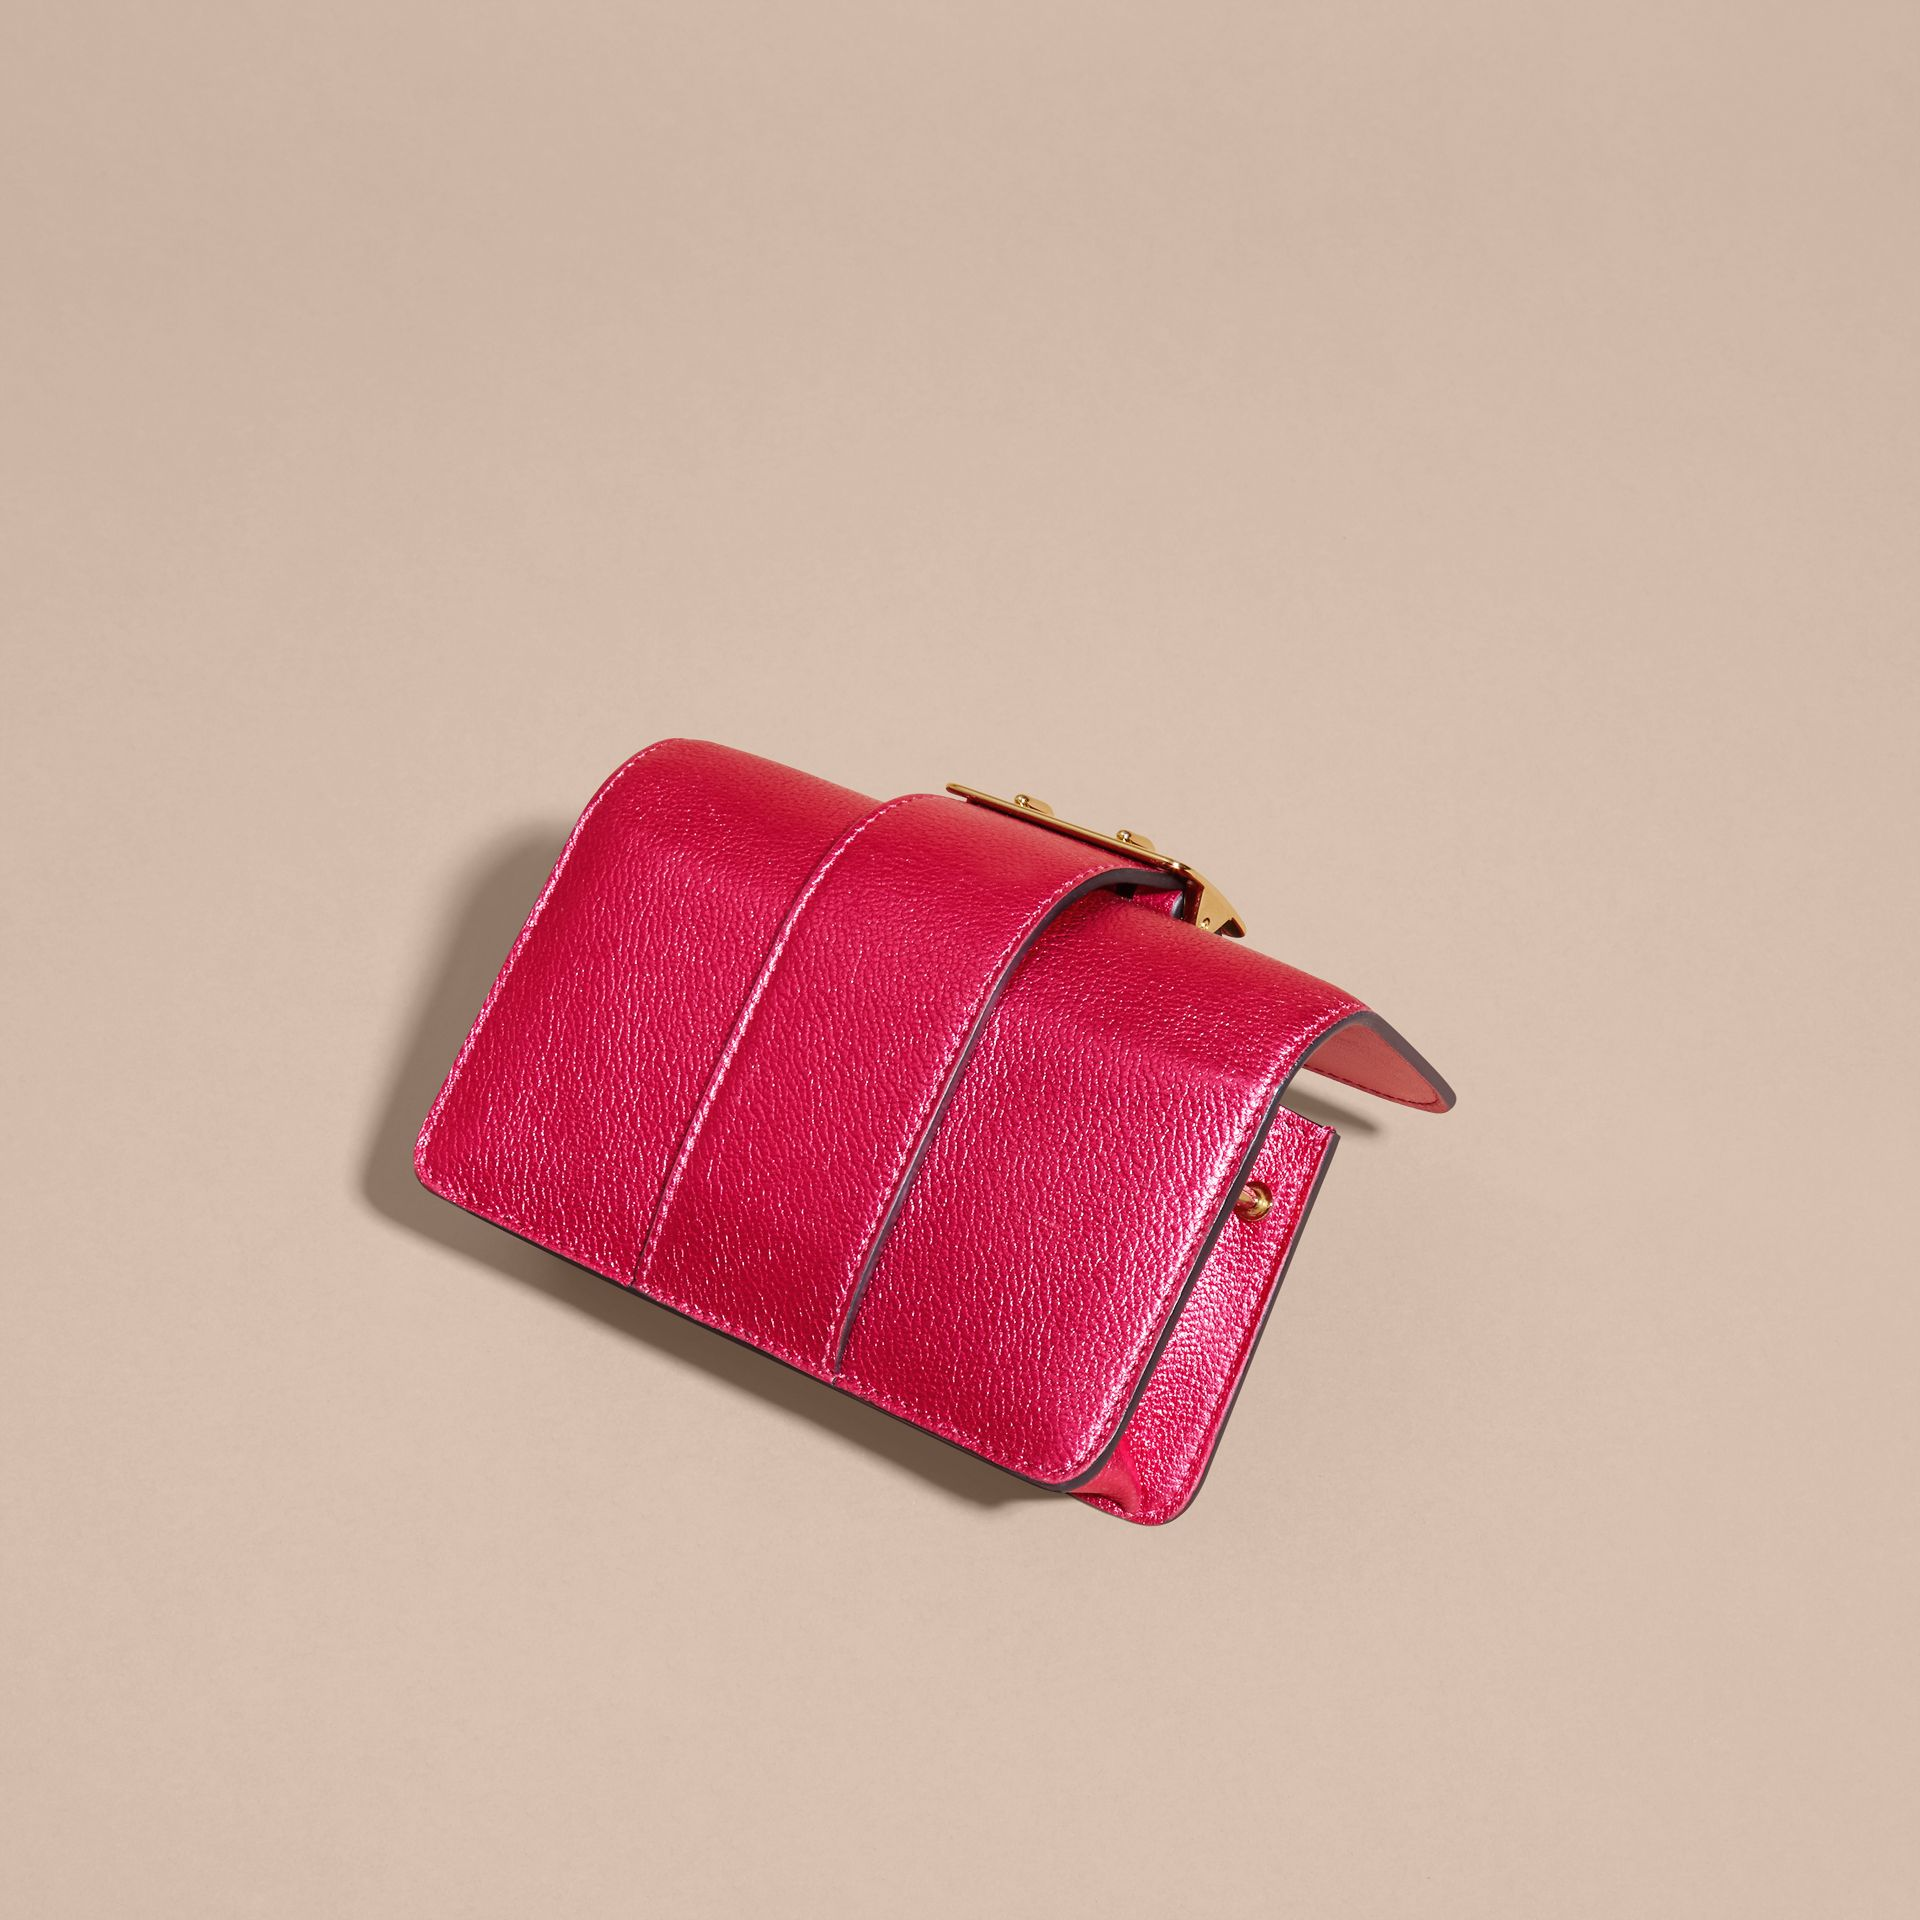 The Mini Buckle Bag in Metallic Grainy Leather in Bright Pink - gallery image 6